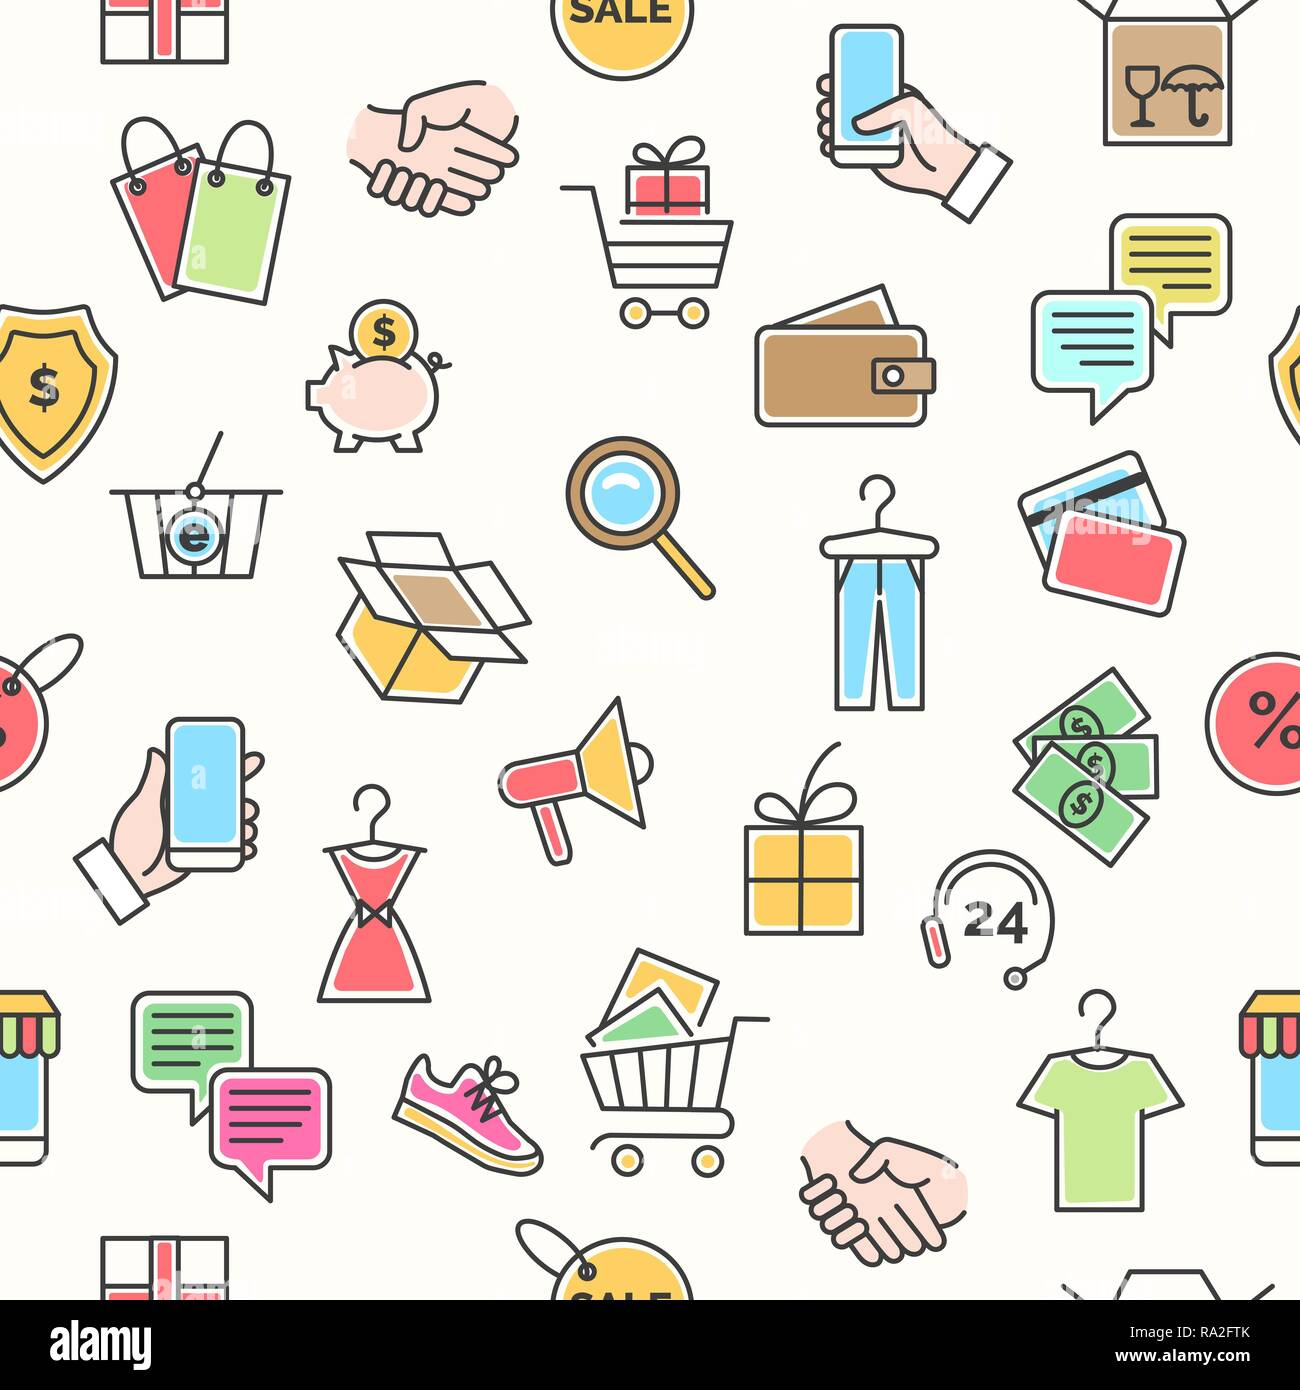 0024d4be68 Online retail pattern. Web shopping business icons square seamless  background for e-commerce sale decoration, vector illustration